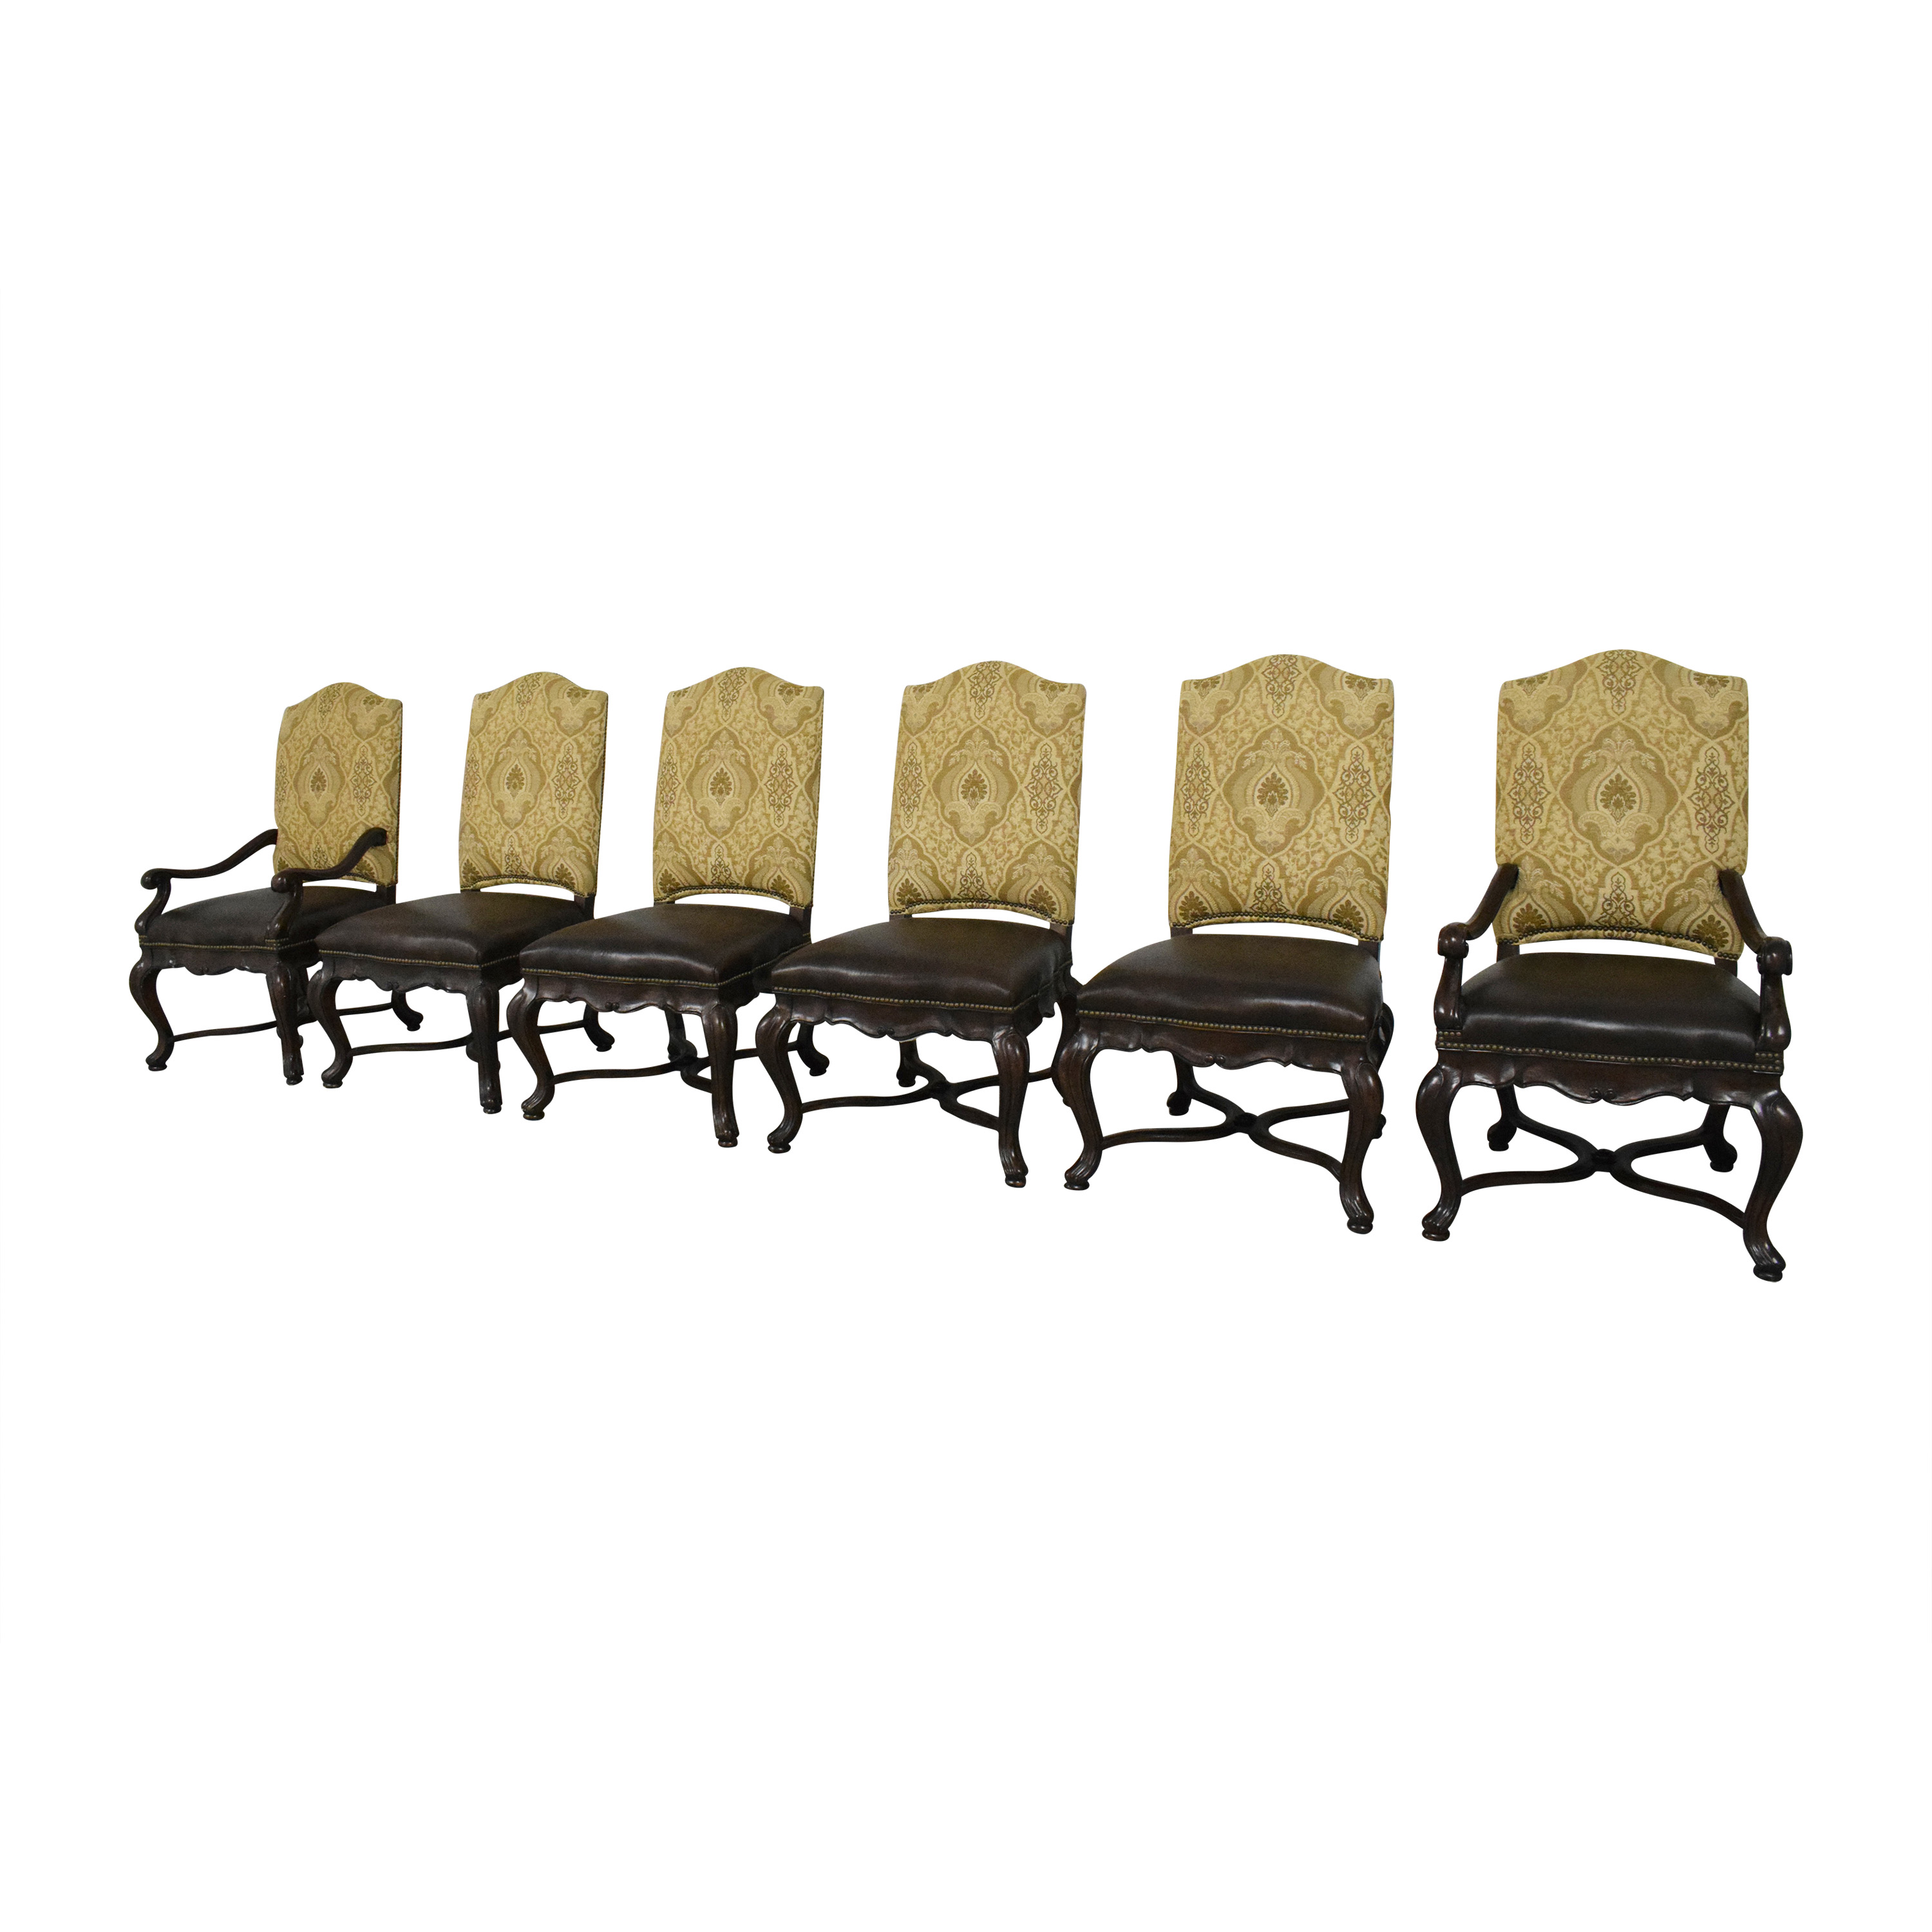 Thomasville Thomasville Hills of Tuscany Dining Chairs nyc